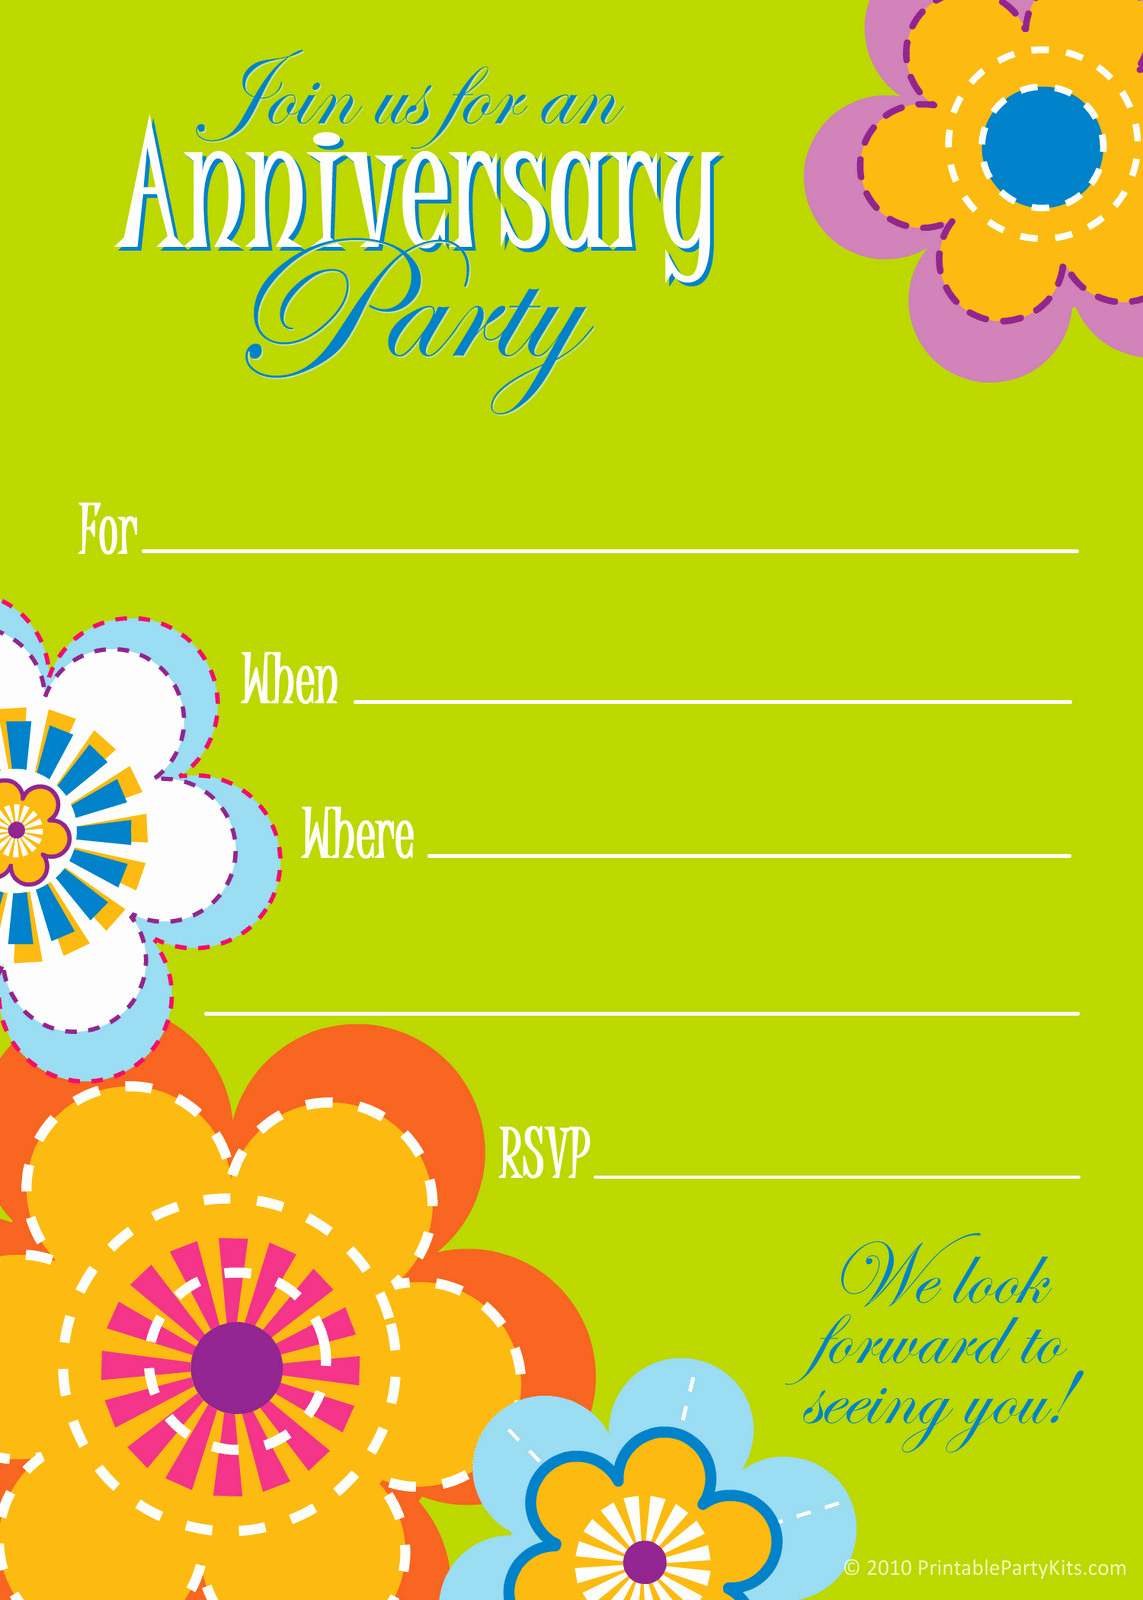 Wedding Anniversary Invite Template Awesome Wedding Anniversary Invitation Template Free